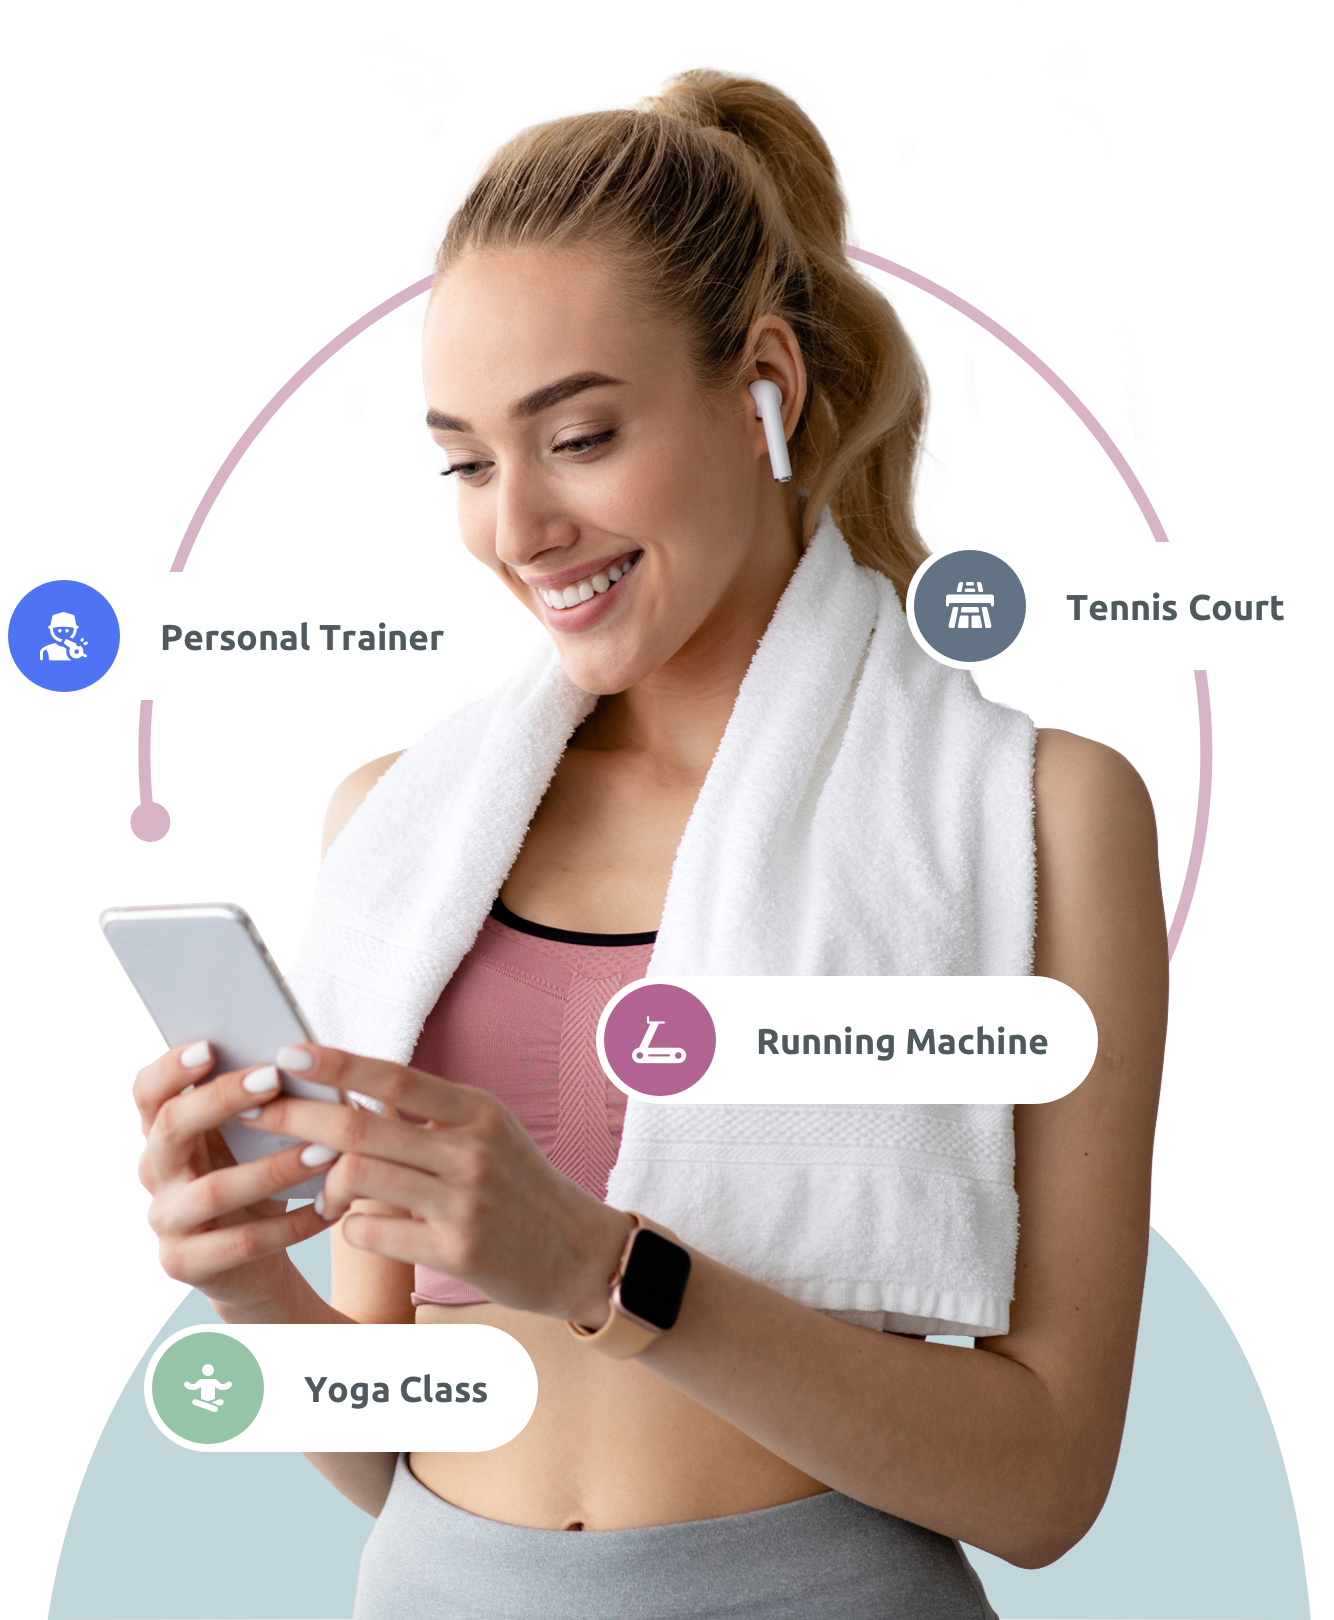 Sports & Fitness Booking System